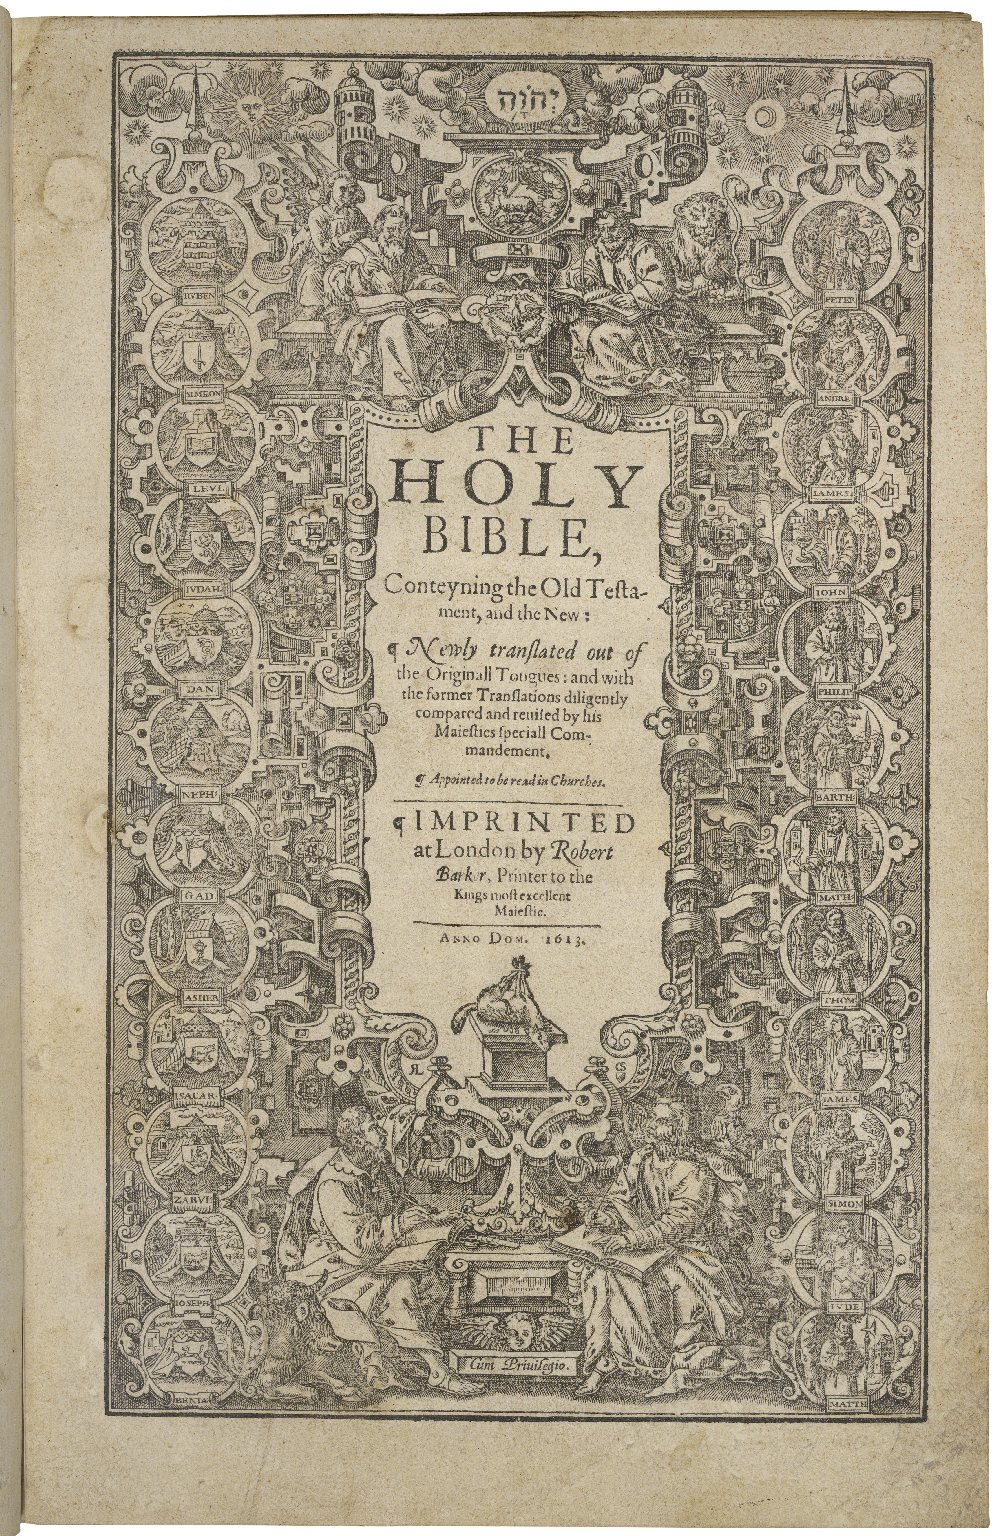 The Holy Bible, conteyning the Old Testament, and the New: newly translated out of the originall tongues: and with the former translations diligently compared and reuised by his Maiesties speciall commandement. Appointed to be read in churches.